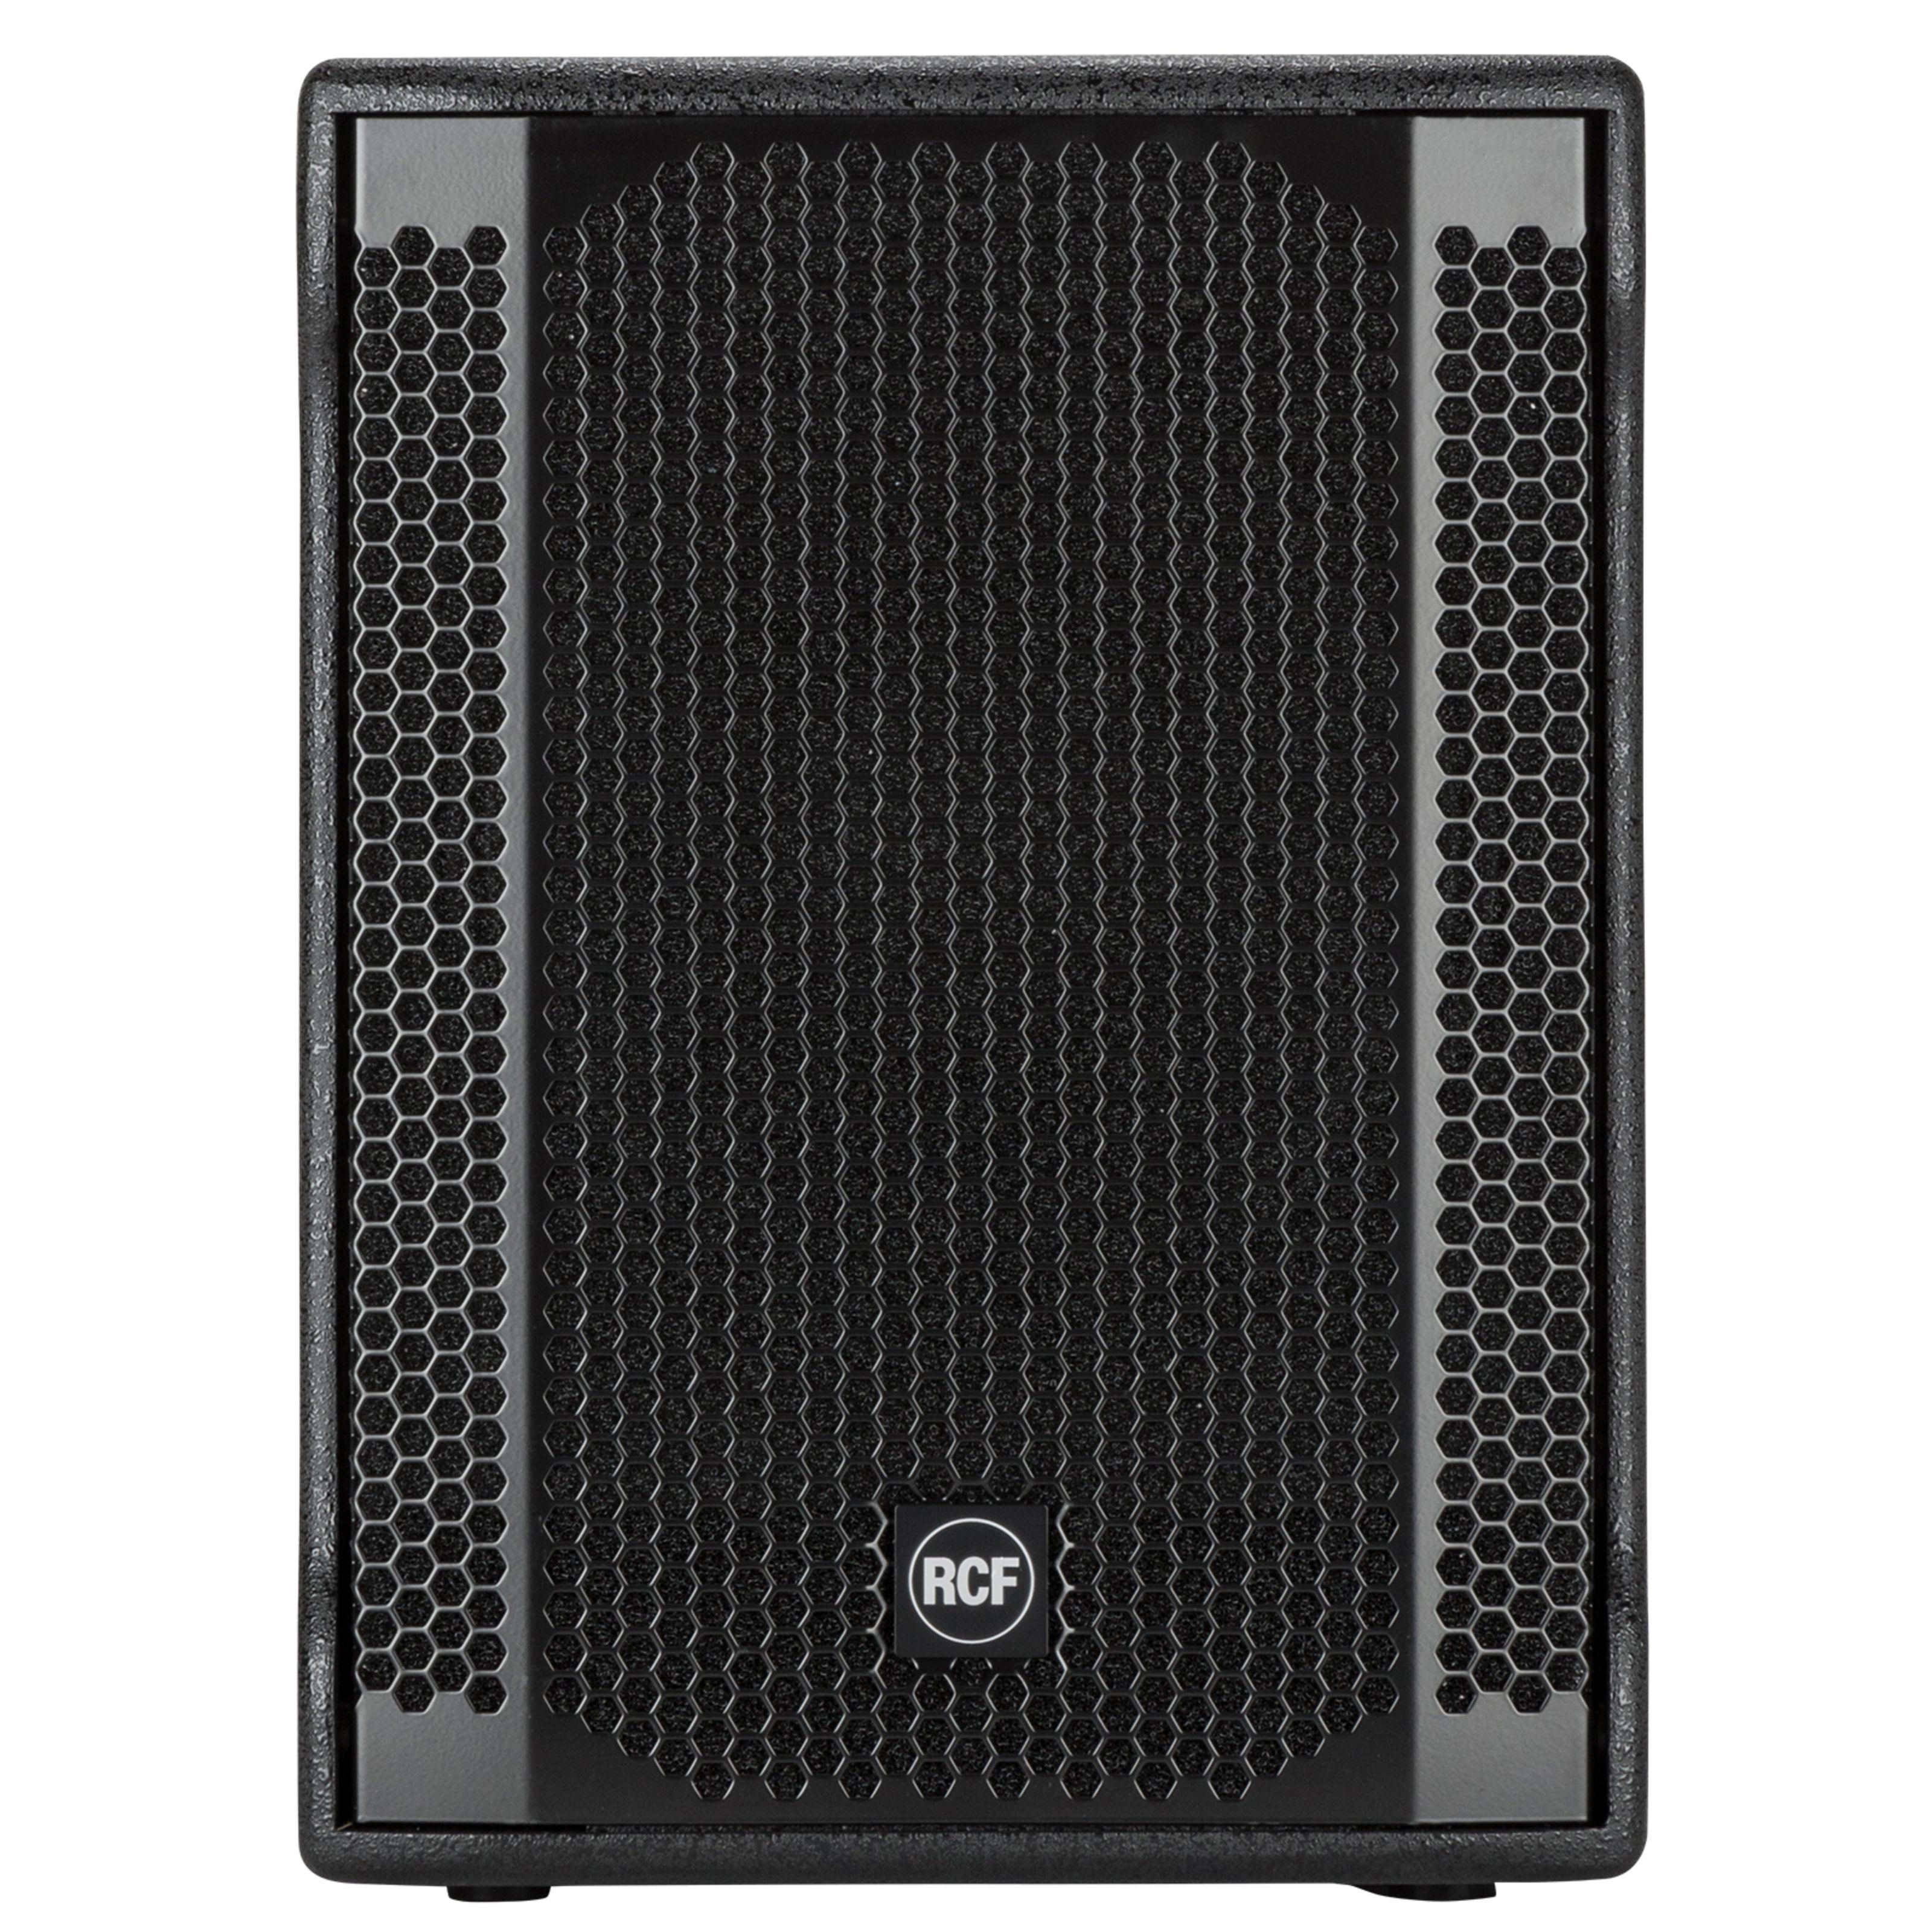 RCF - SUB 702-AS II 12 Active-Subwoofer, 700 W 13000453